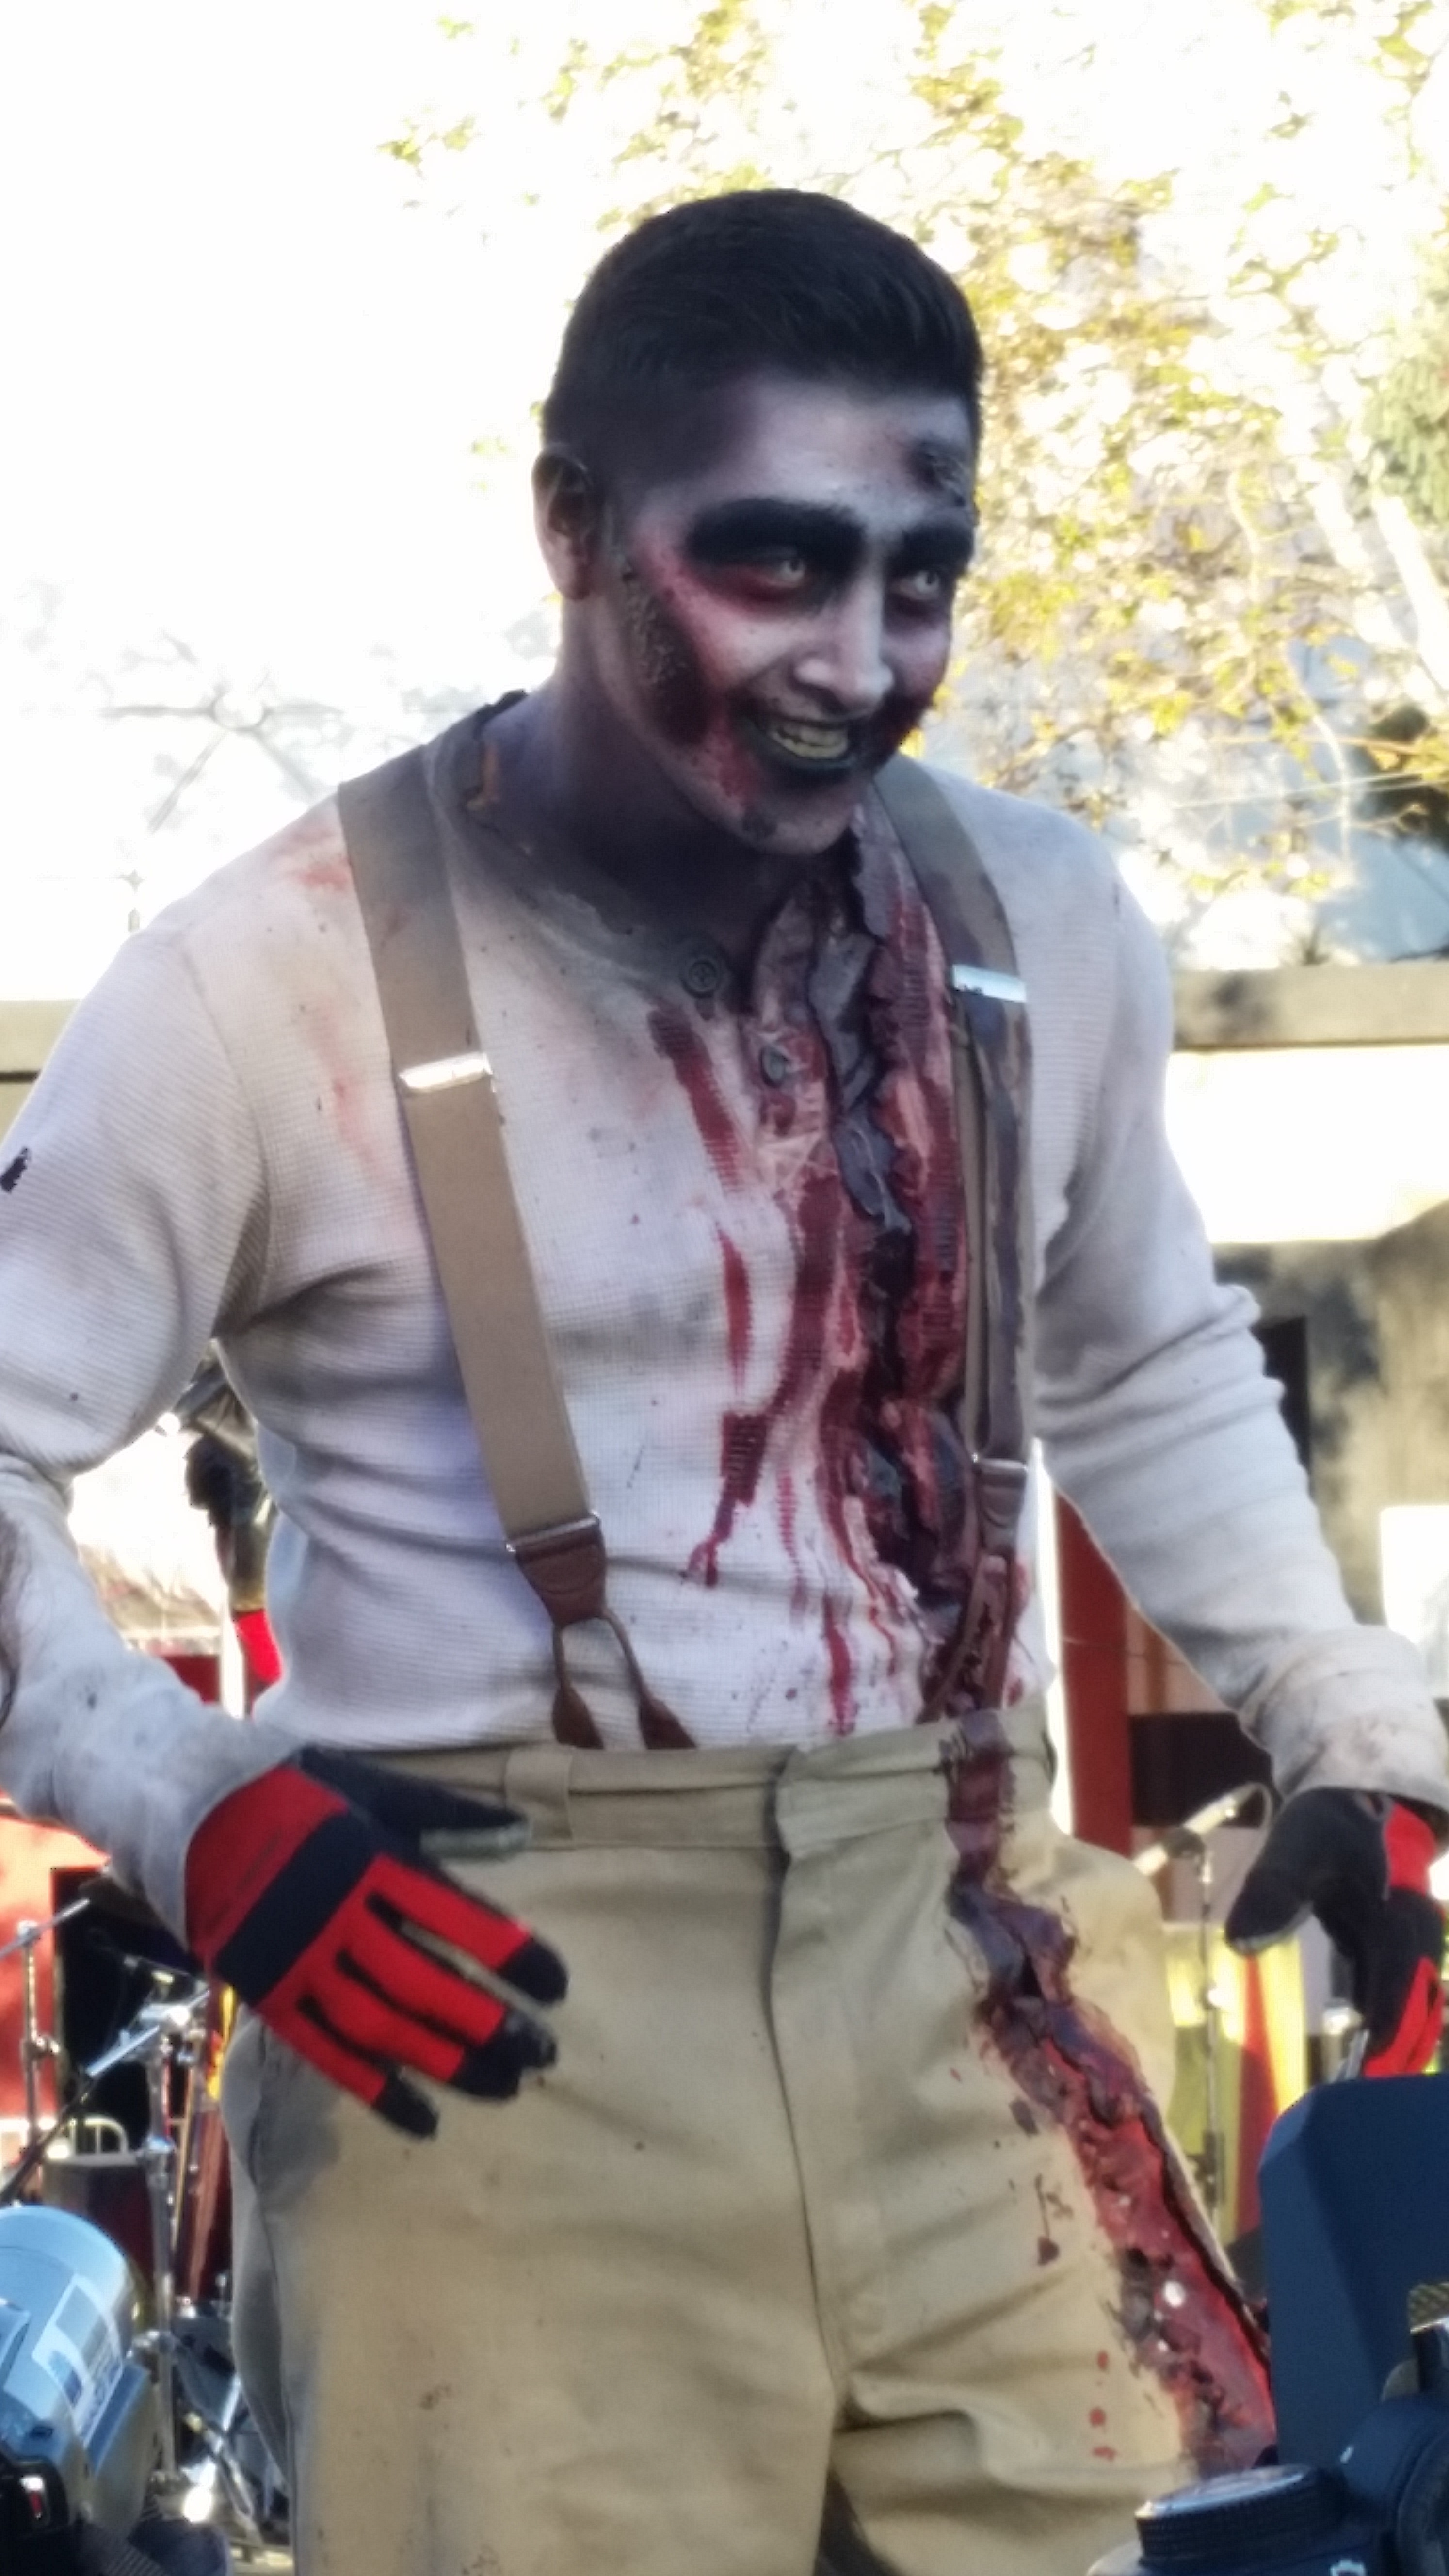 Queen Mary Dark Harbor Returns and I Have a Promo Discount Code ...